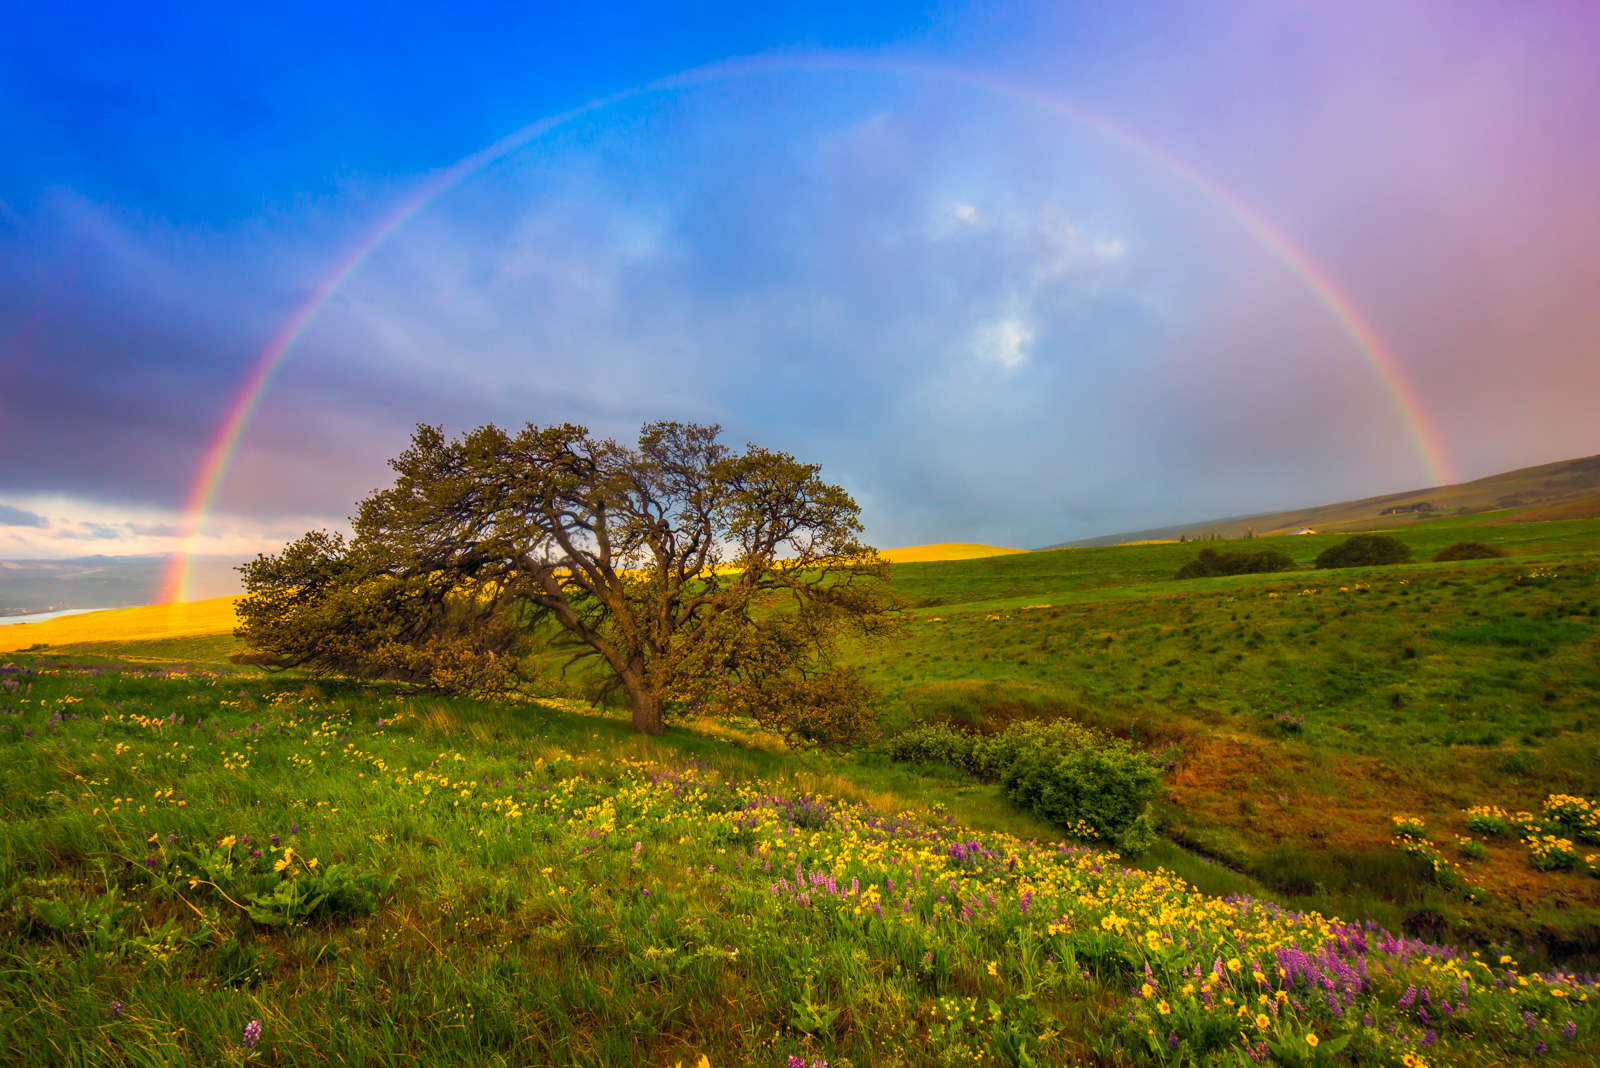 Rainbow arcing over Dalles Mountain Ranch with spring wildflowers. Available Print Sizes: 12x18, 16x24, 20x30, 24x36, 30x45...